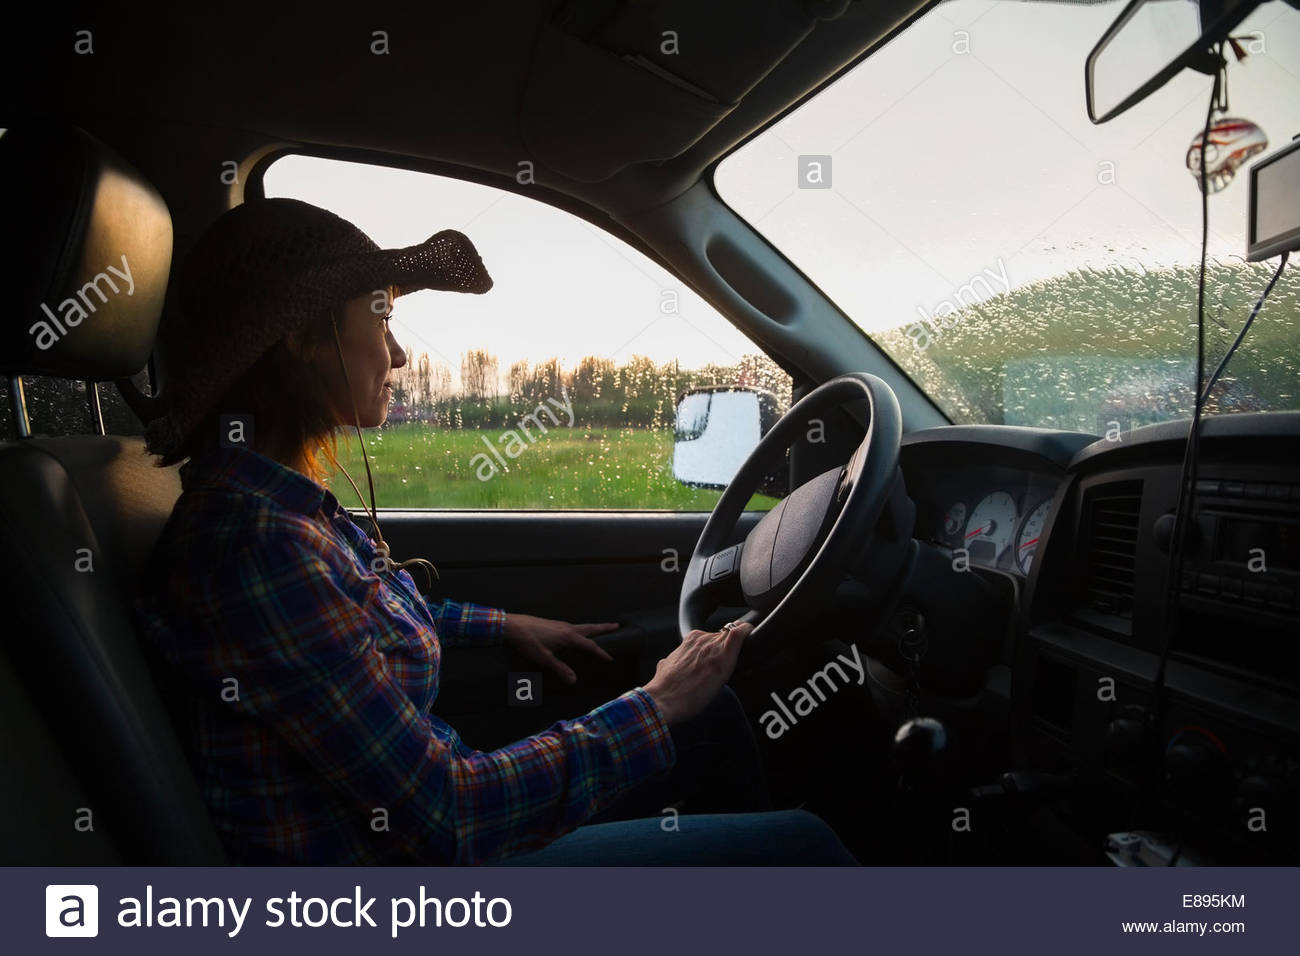 Rancher driving truck - Stock Image